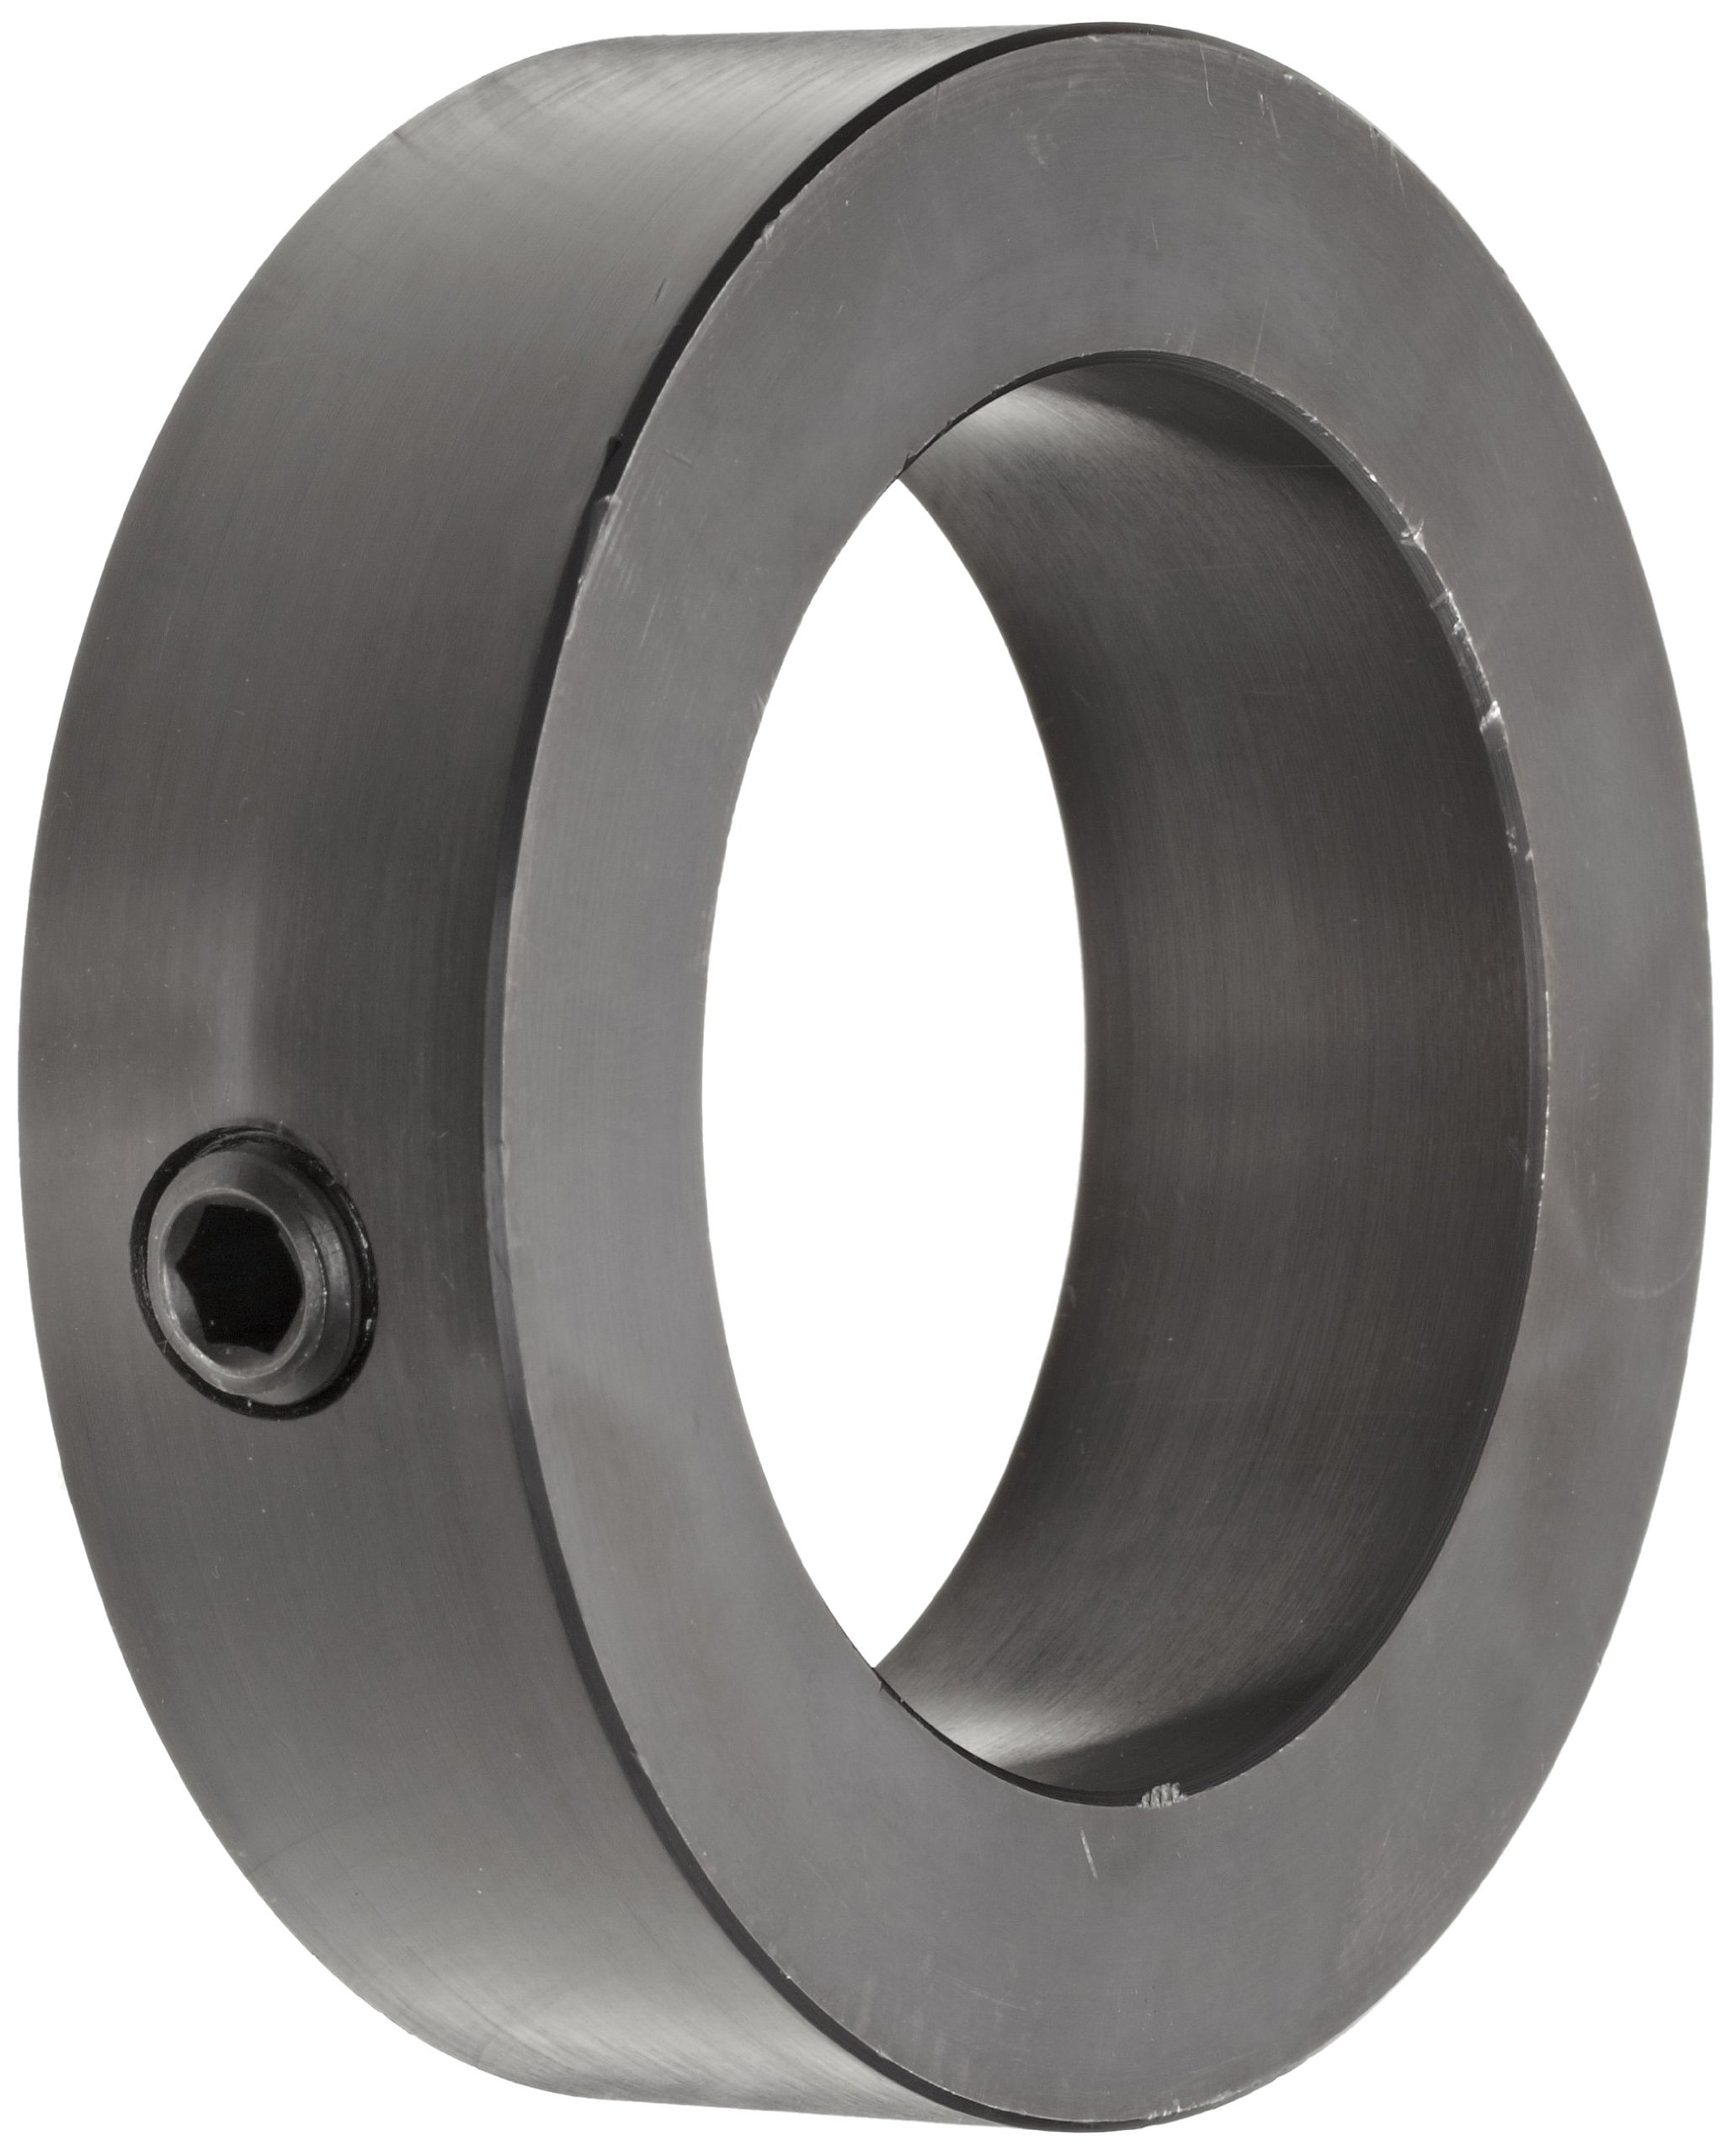 5//8 Bore Climax Metal TC-062-18 Shaft Collar With 10-32 x 1//2 Set Screw Steel One Piece 1-1//2 OD 13//32 Width Black Oxide Finish Threaded